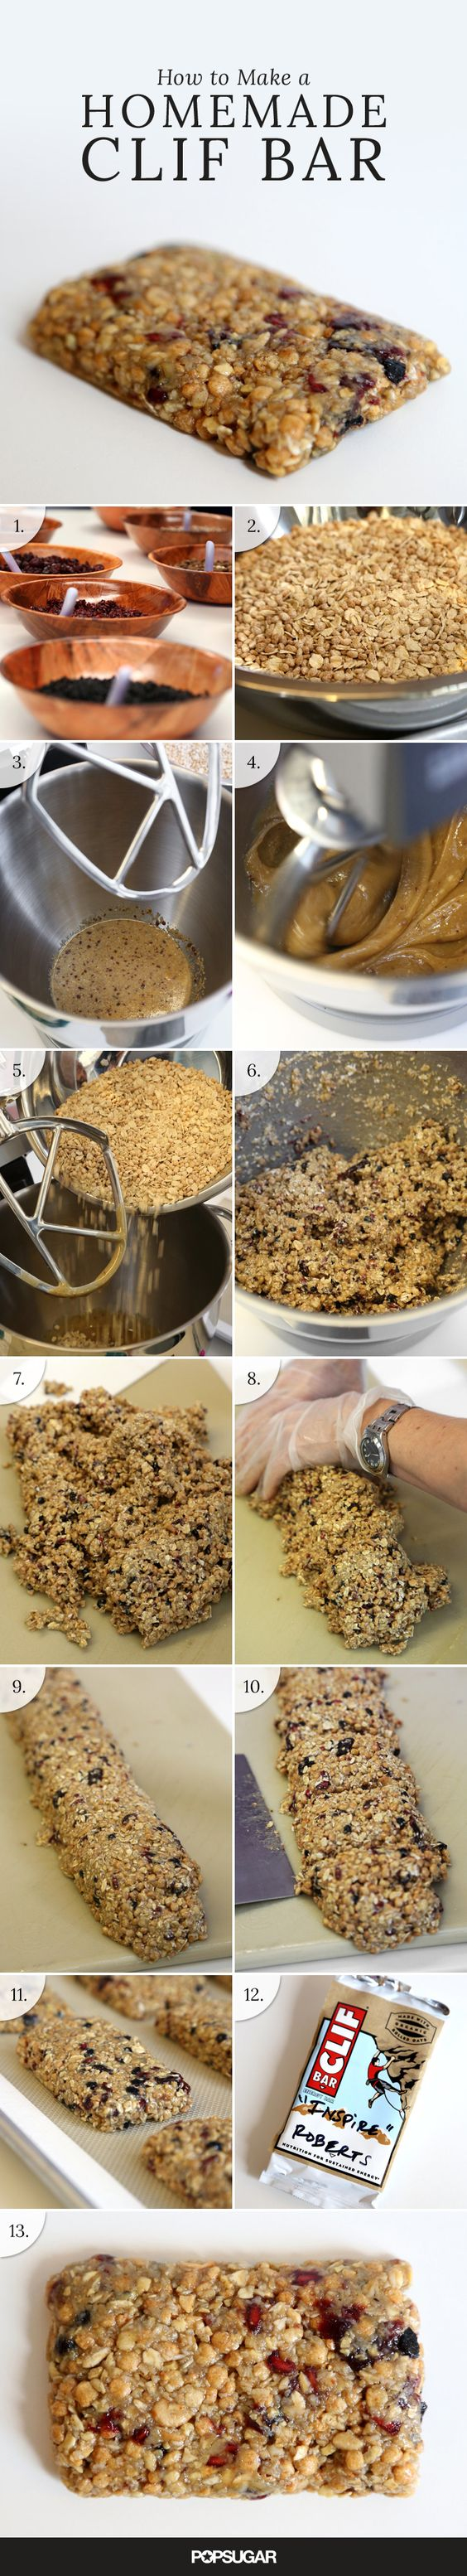 The makers of Clif Bar shared their tips and techniques for making snack bars using oats, nut butter, and a variety of dried fruits. See the step-by-step instructions, so you can be empowered to make your own for post-workout snacks, road trips, or for any time you're on the go.